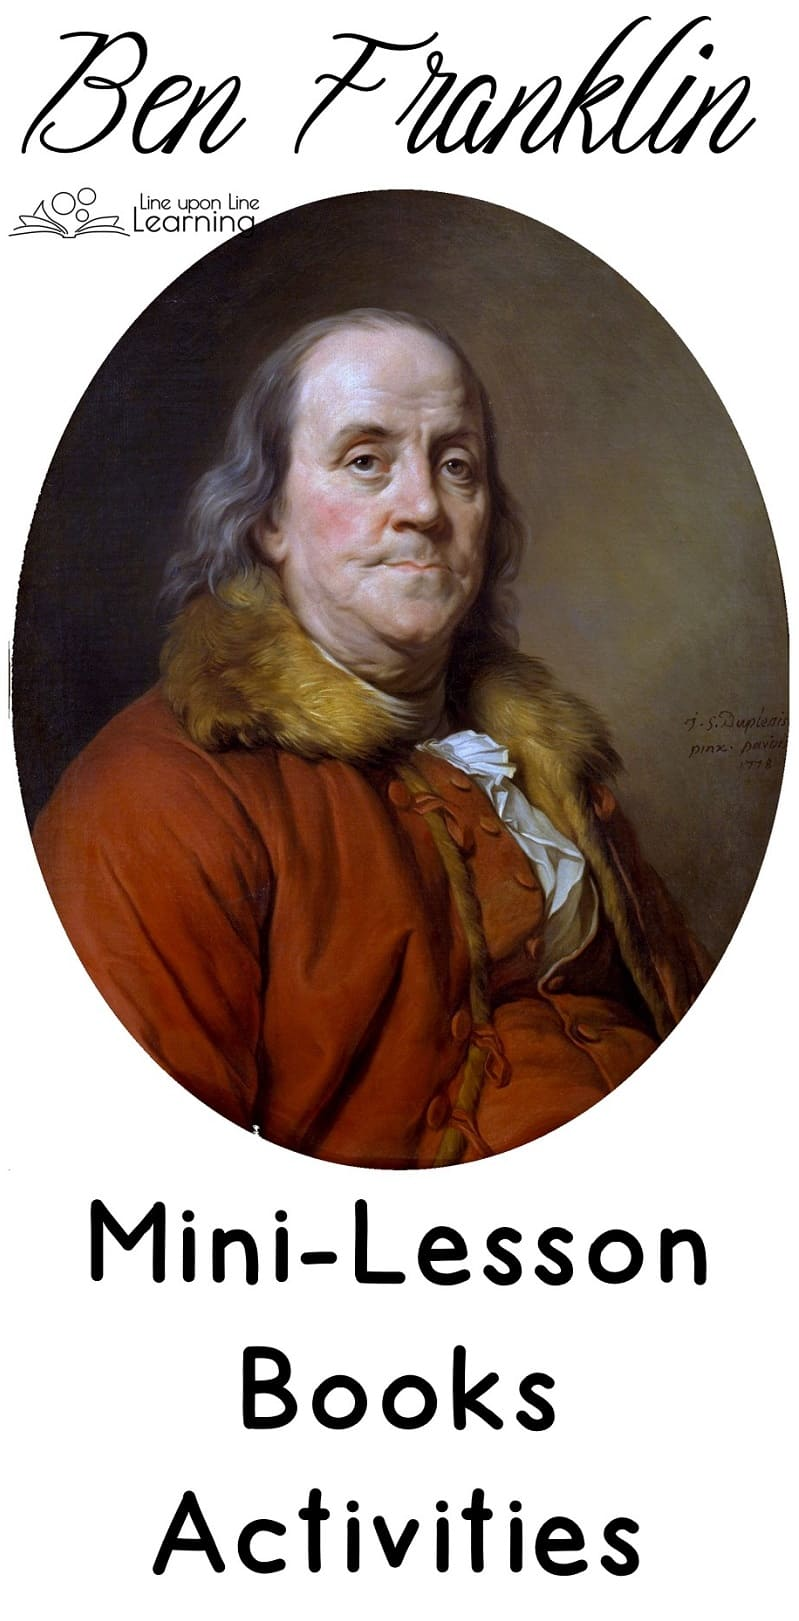 The most interesting character of the colonial America era has to have been Ben Franklin. Do a mini-lesson on his experiments and discoveries to make American History all the more relevant.